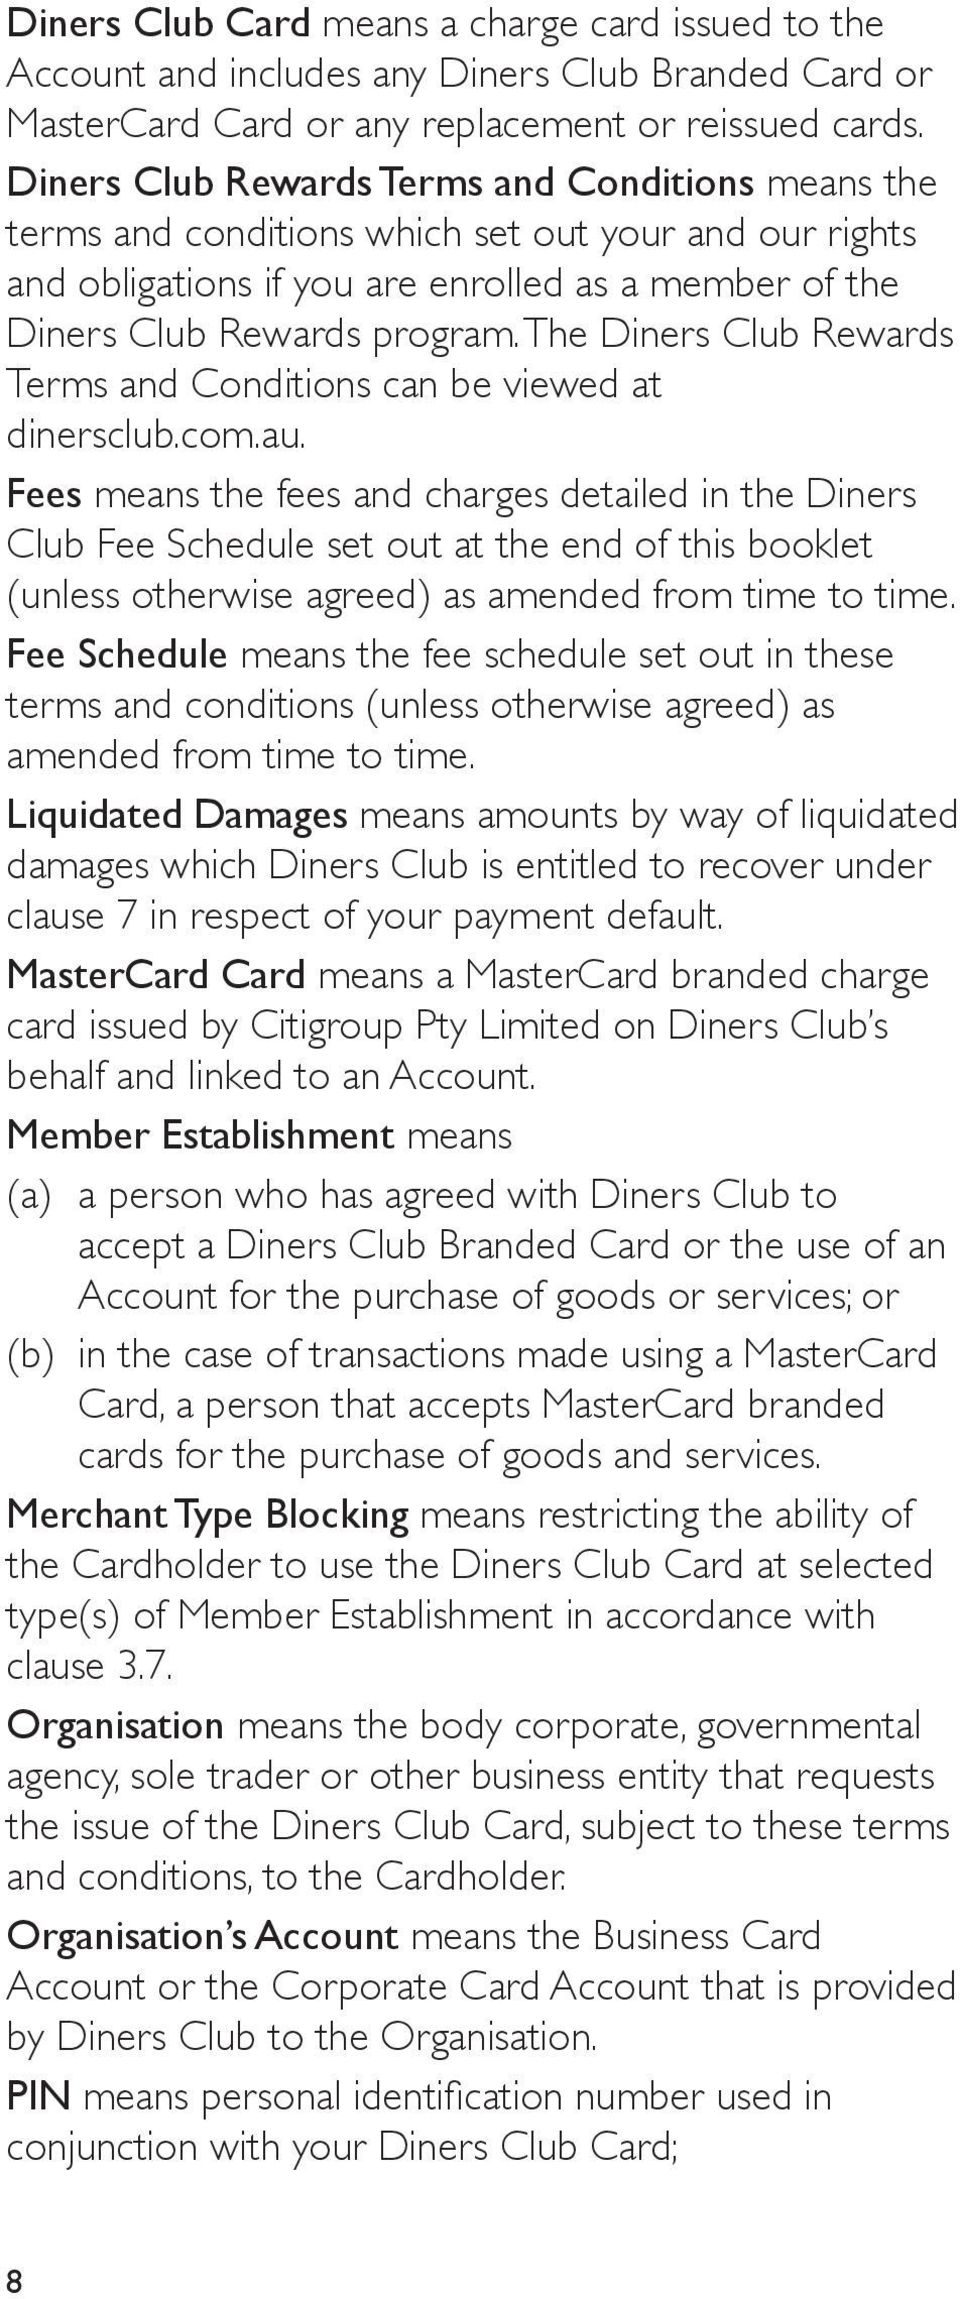 The Diners Club Rewards Terms and Conditions can be viewed at dinersclub.com.au.